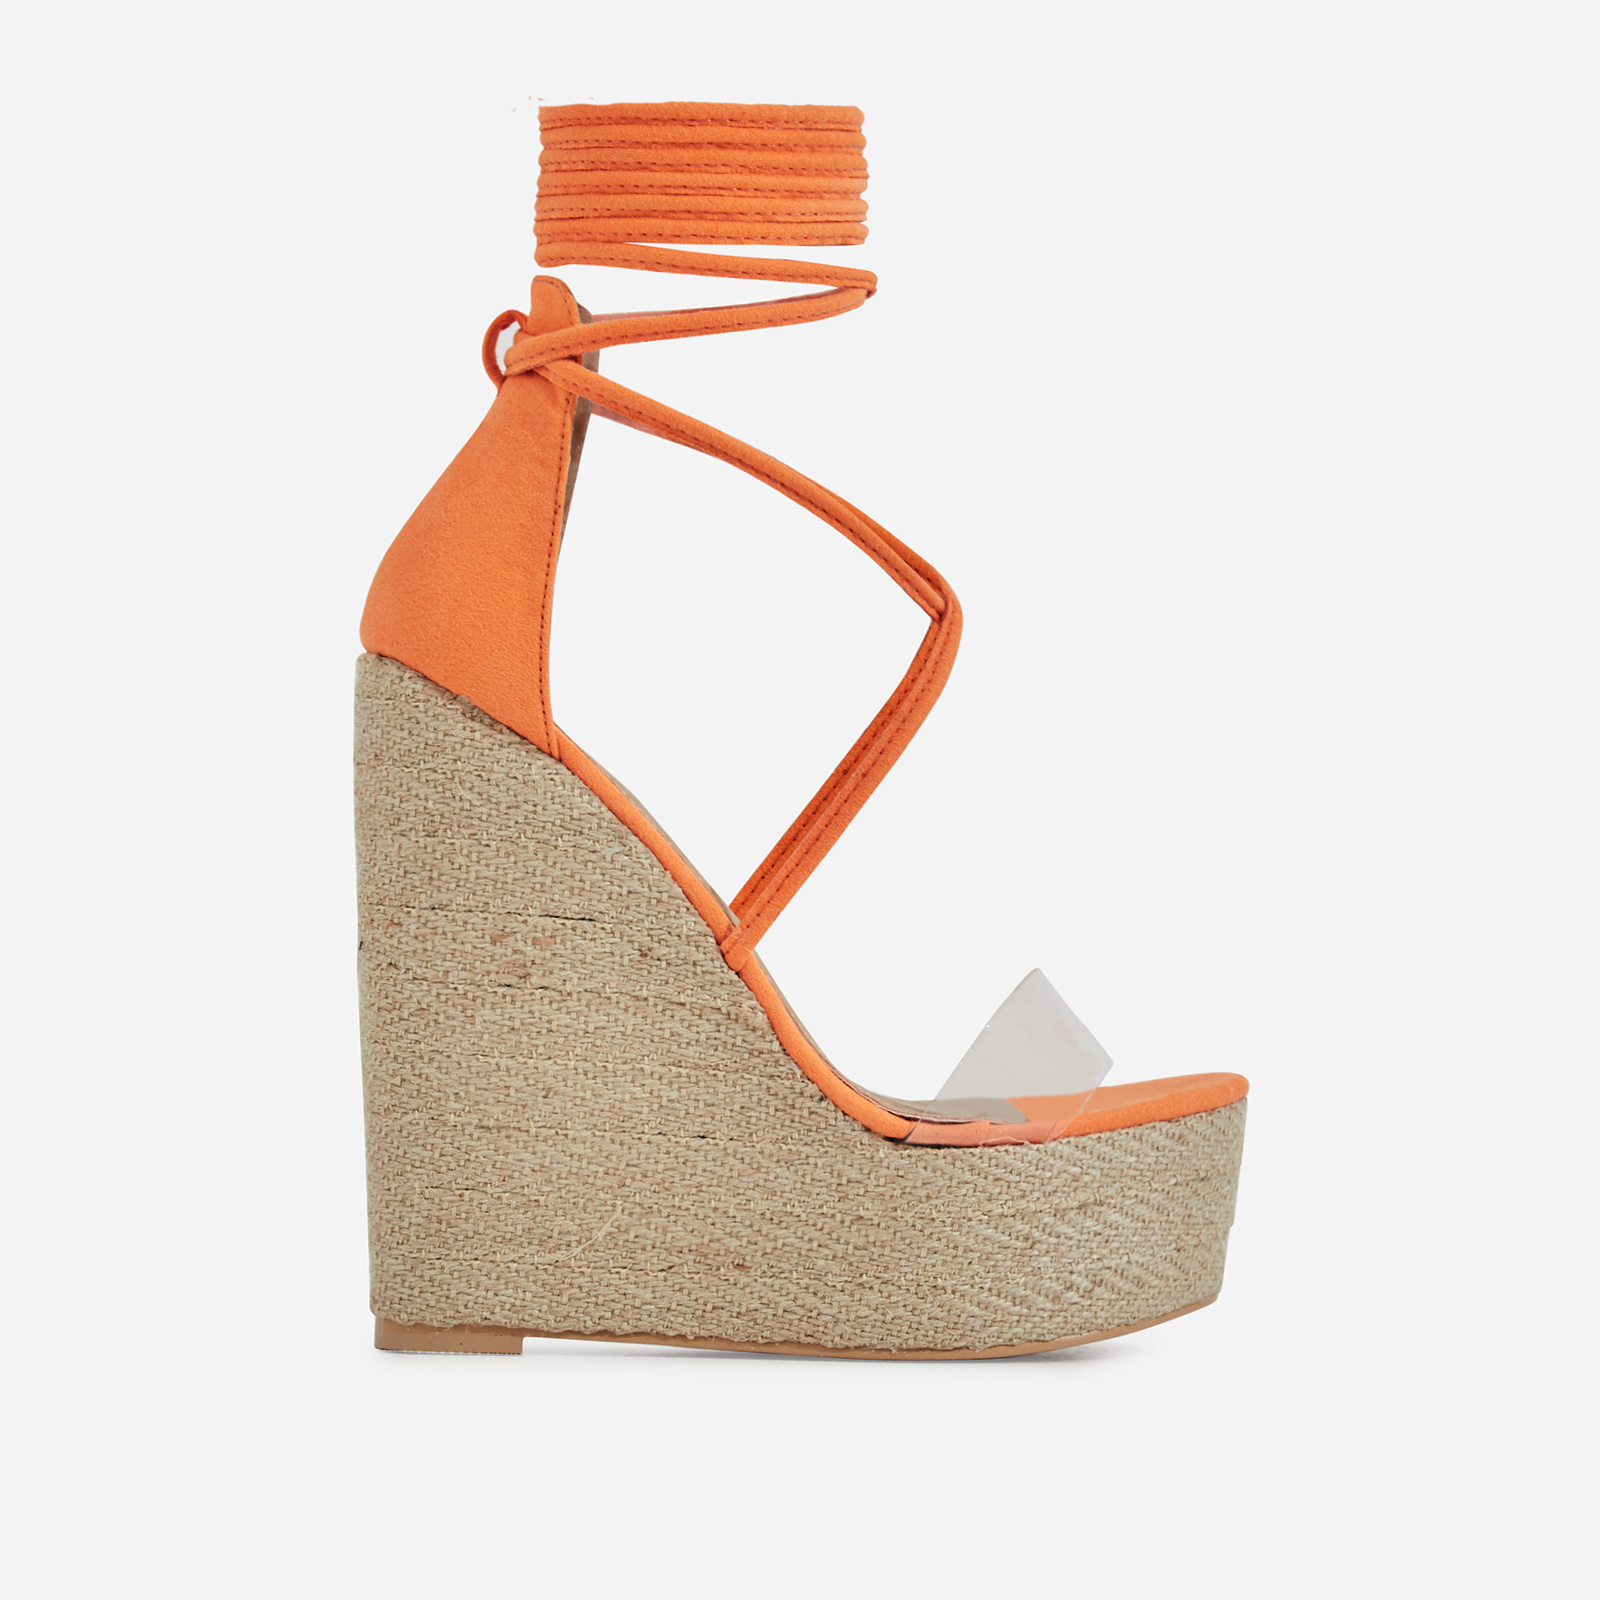 Aliki Perspex Platform Lace Up Espadrille Wedge Block Heel In Orange Faux Suede